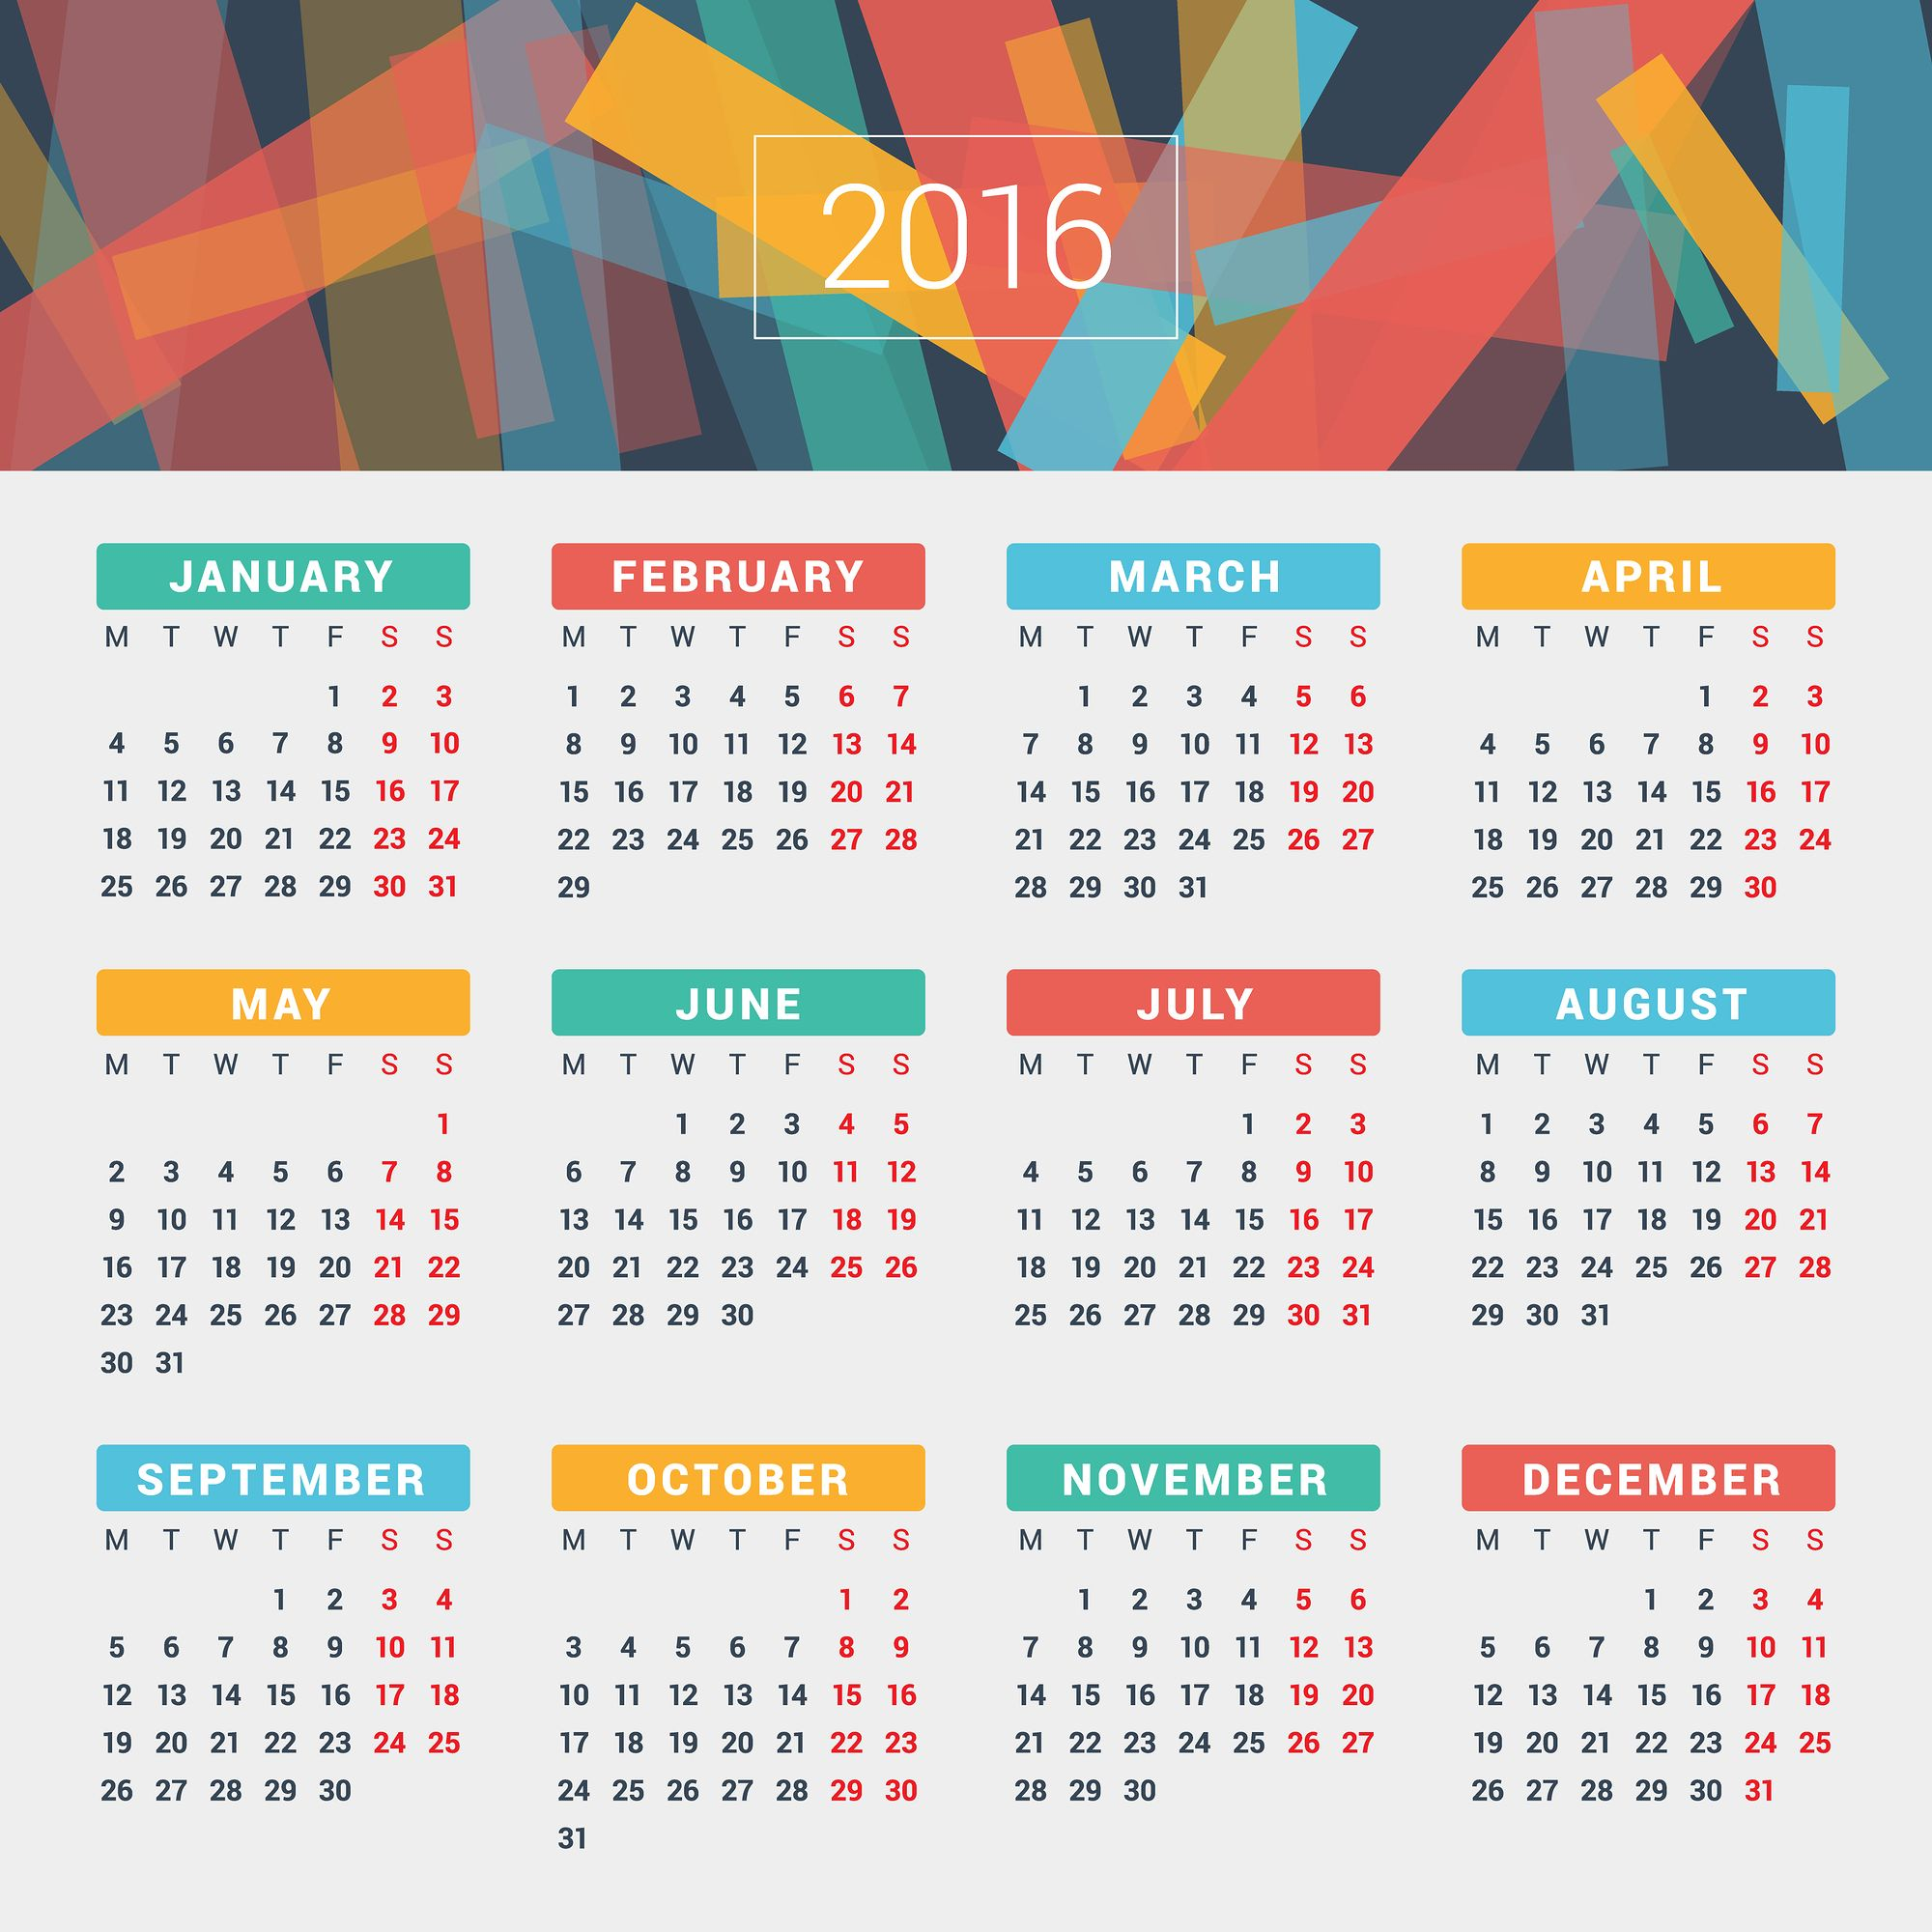 Magnificent 1 Year Experienced Java Resume Tiny 10 Best Resume Tips Regular 12 Tab Divider Template 1and1 Templates Young 1st Birthday Invite Templates White2014 June Calendar Template Free Calendar 2016   Google Search | Calendars | Pinterest | Free ..